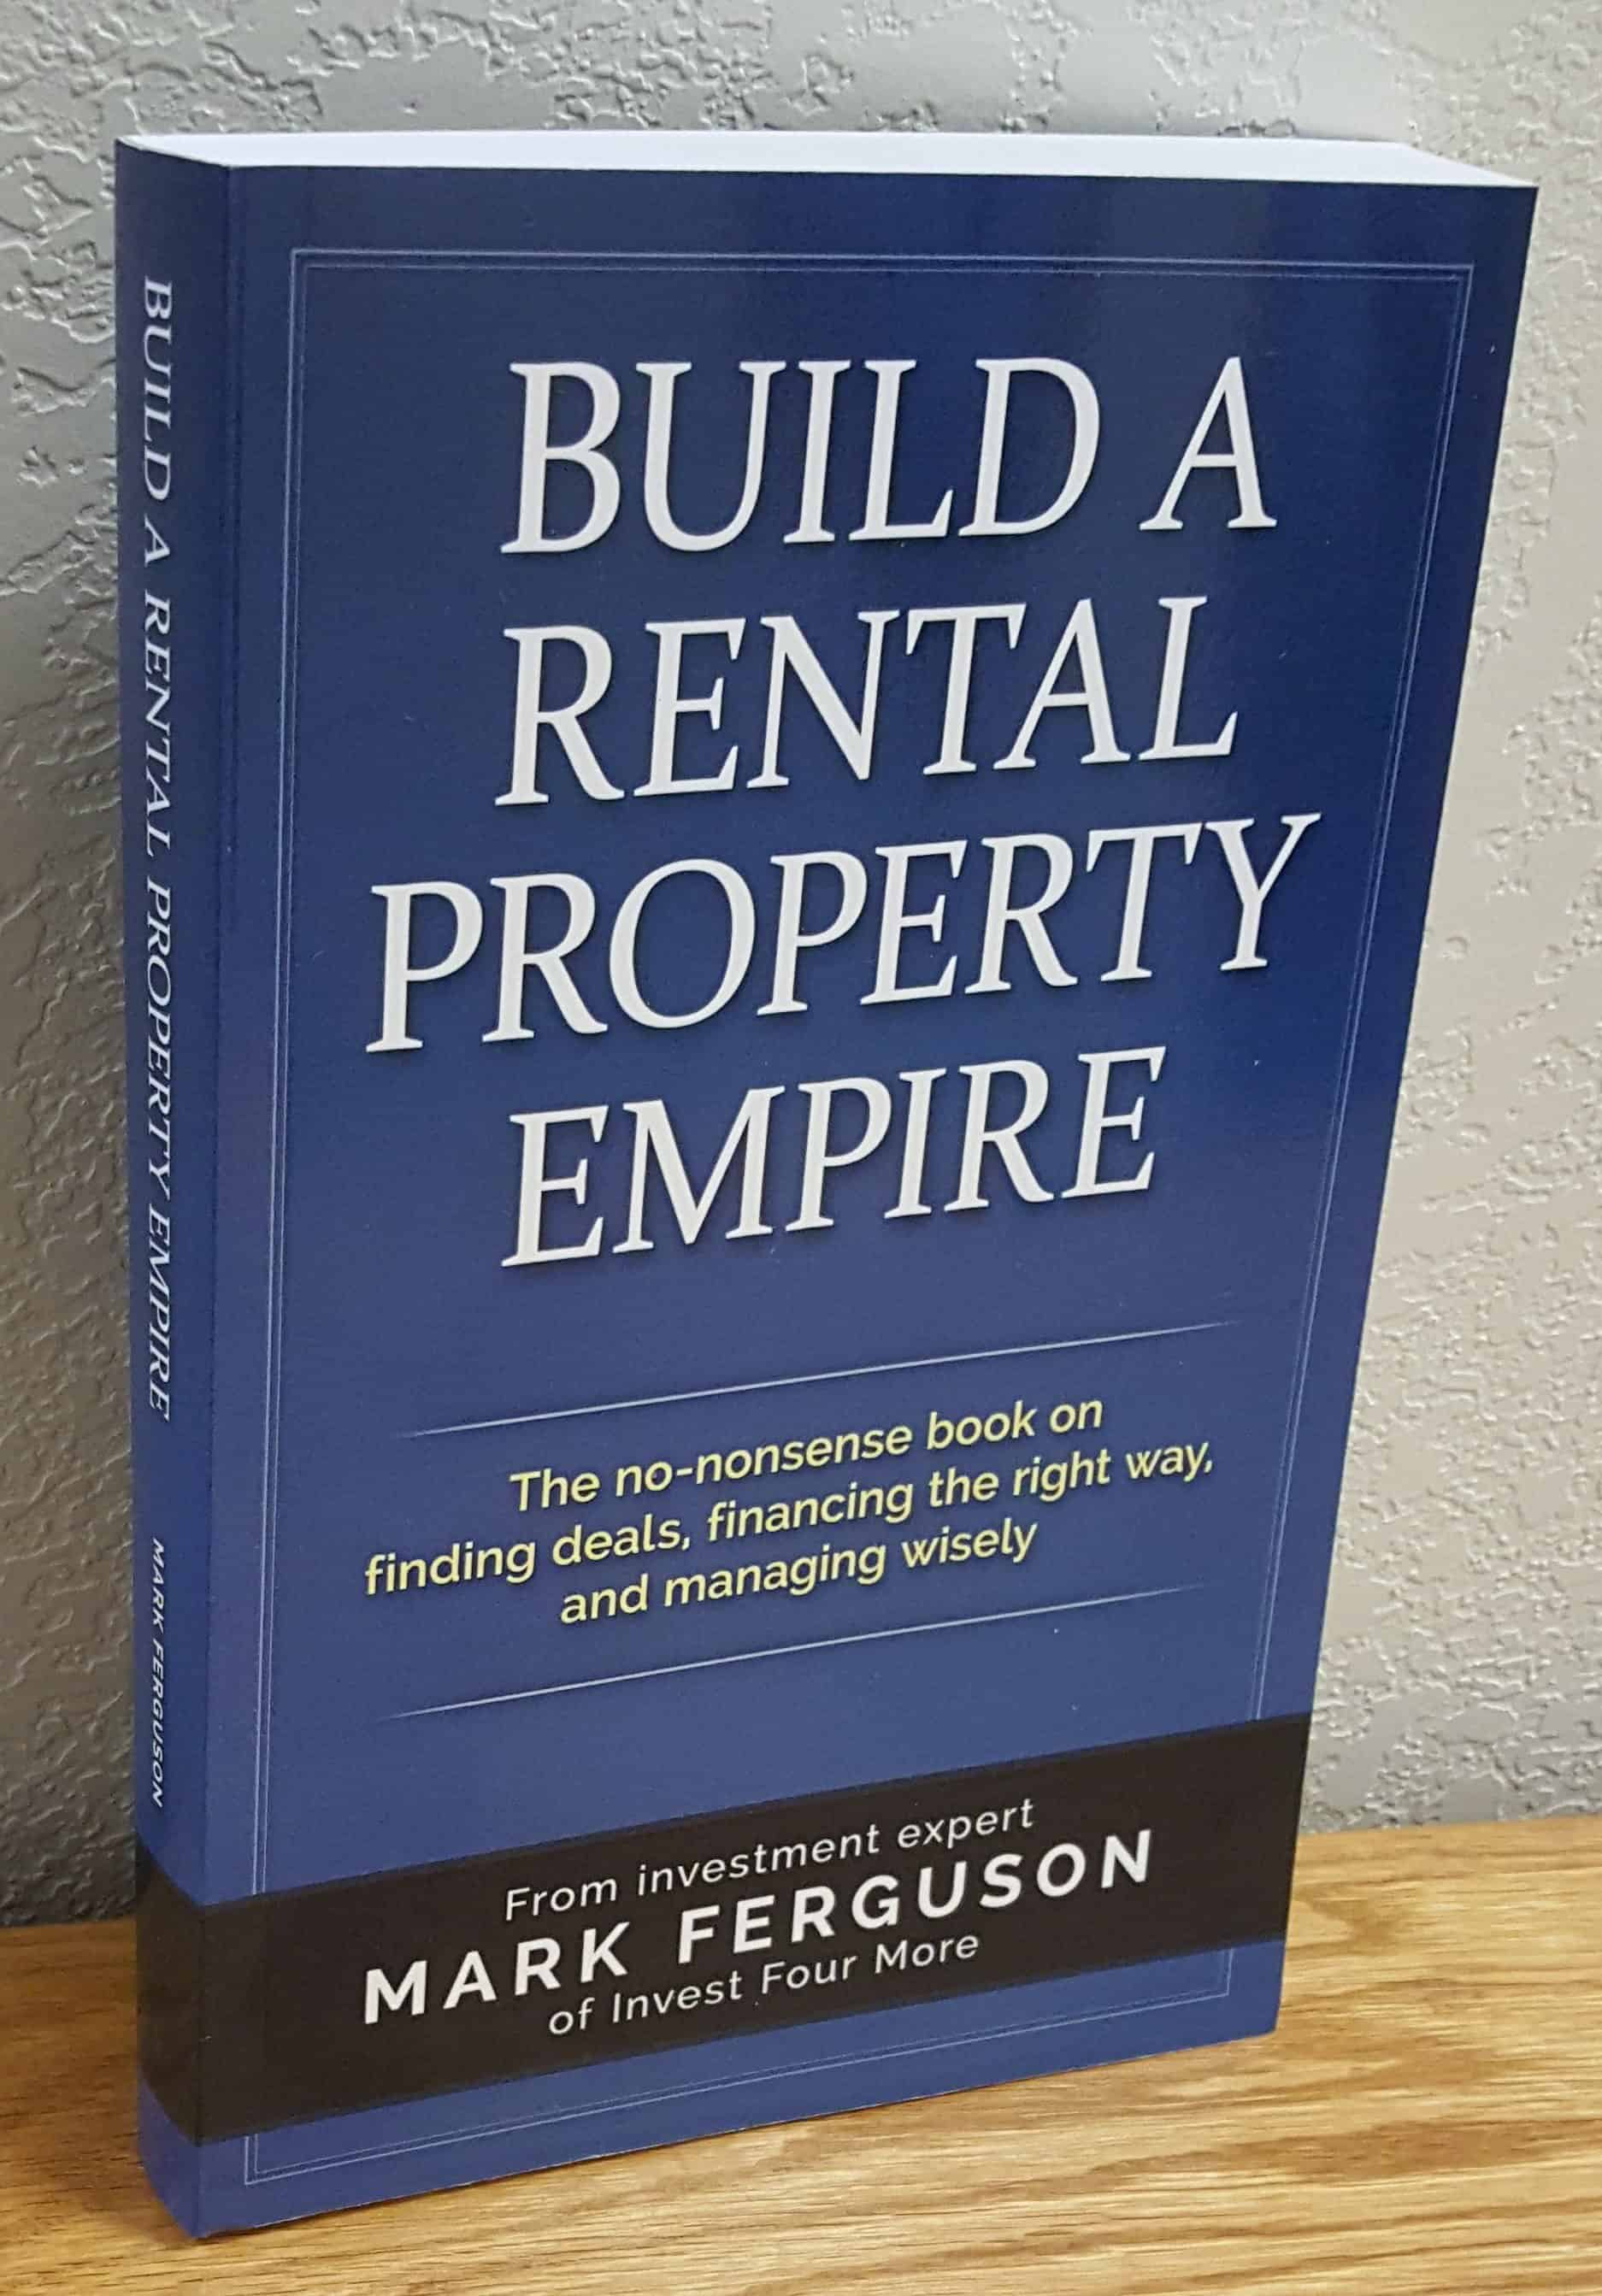 build a rental property empire book